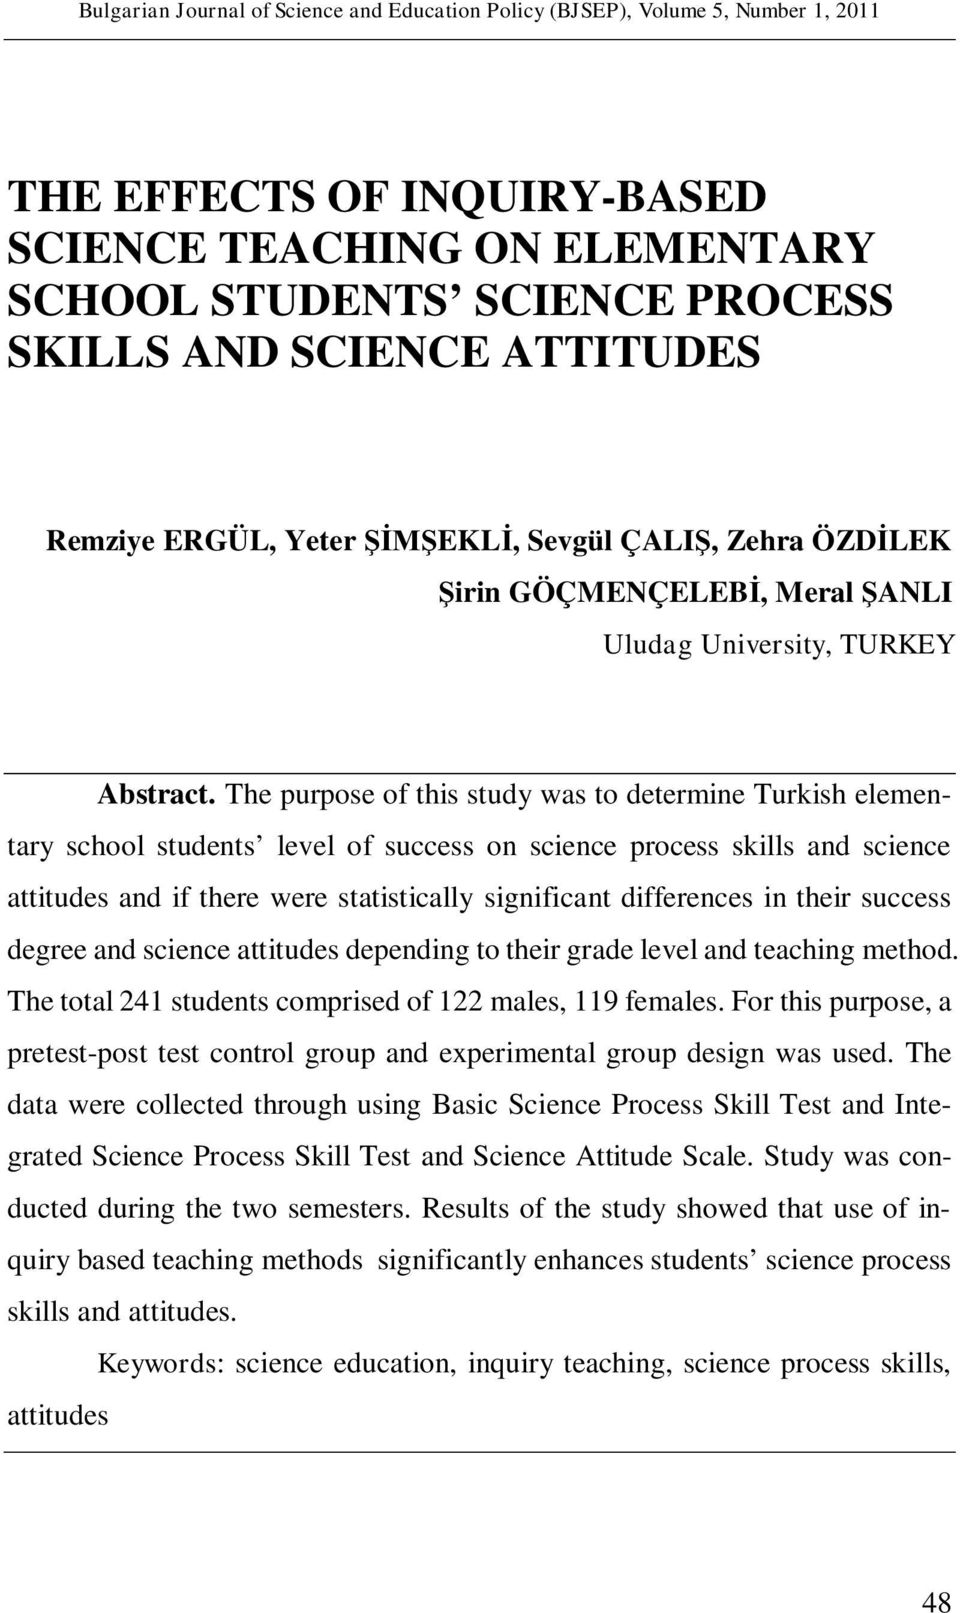 The purpose of this study was to determine Turkish elementary school students level of success on science process skills and science attitudes and if there were statistically significant differences